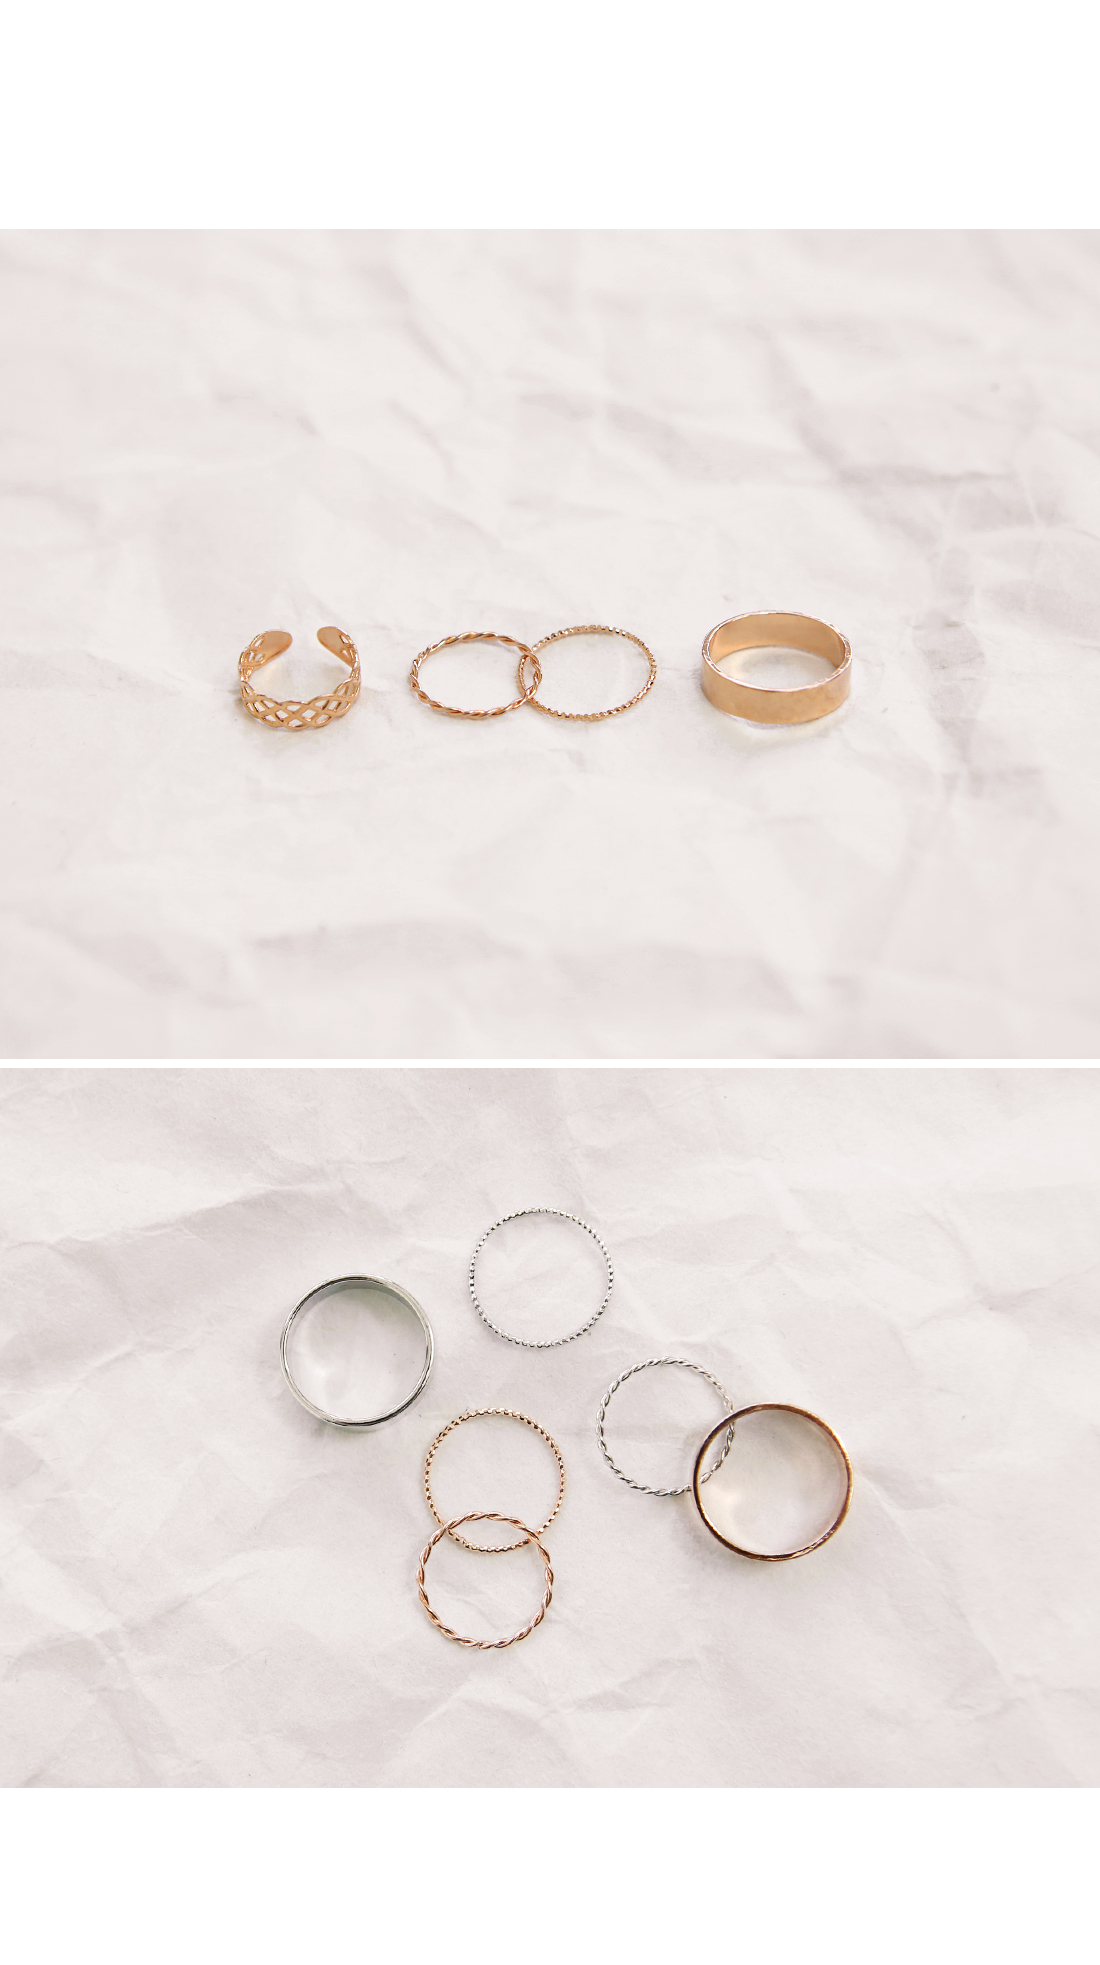 DAILY SIMPLE RING 4 SET